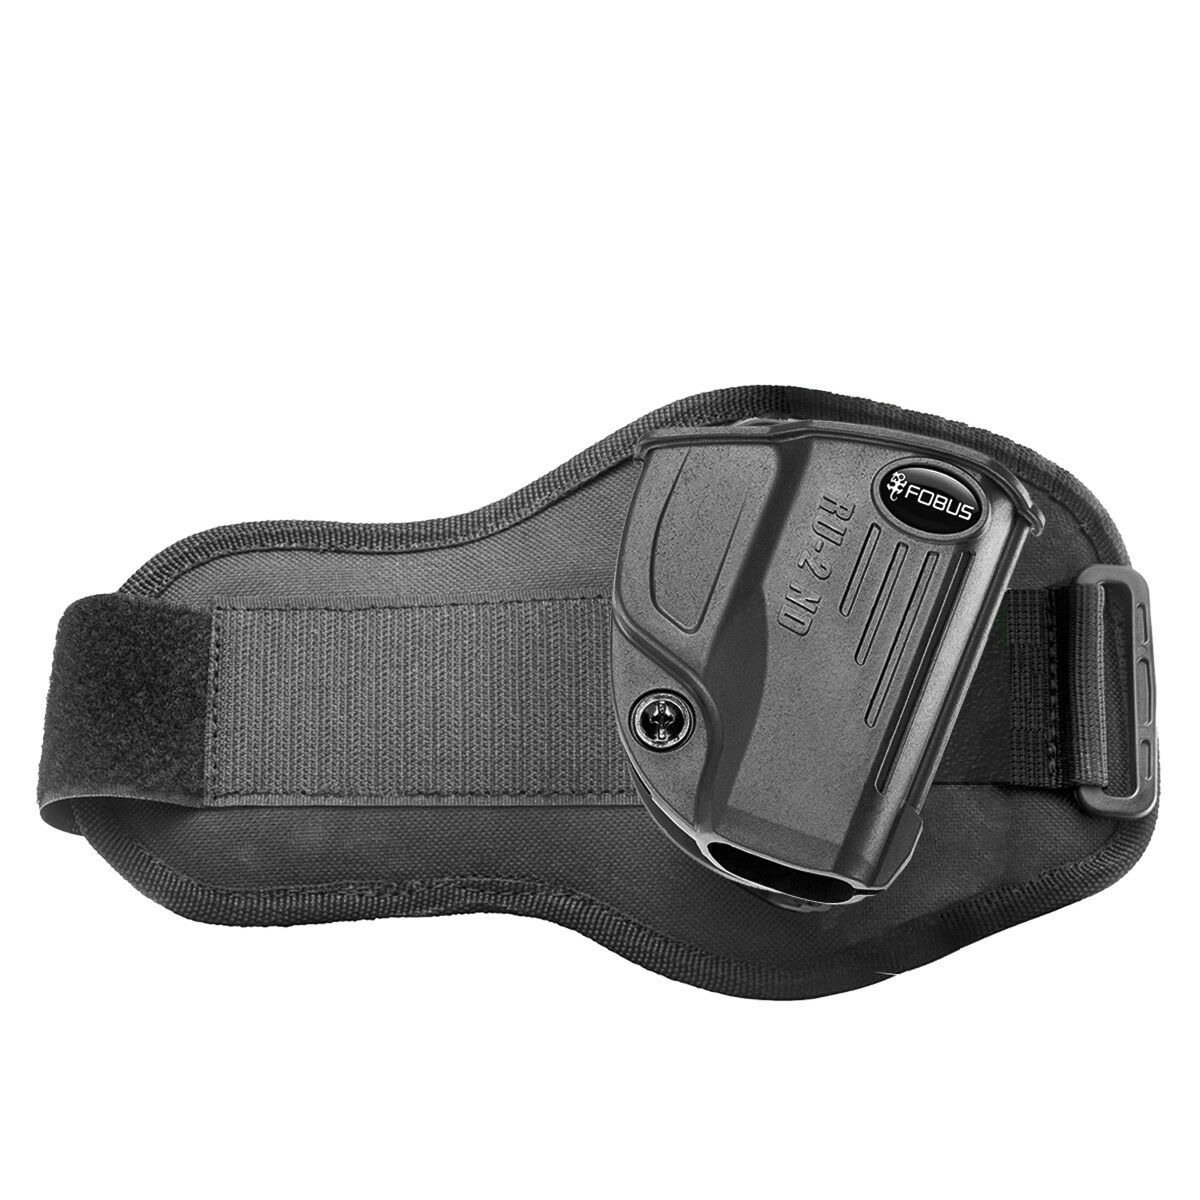 Fobus Concealment Ankle Holster for Ruger LC9s & LC380 - RU-